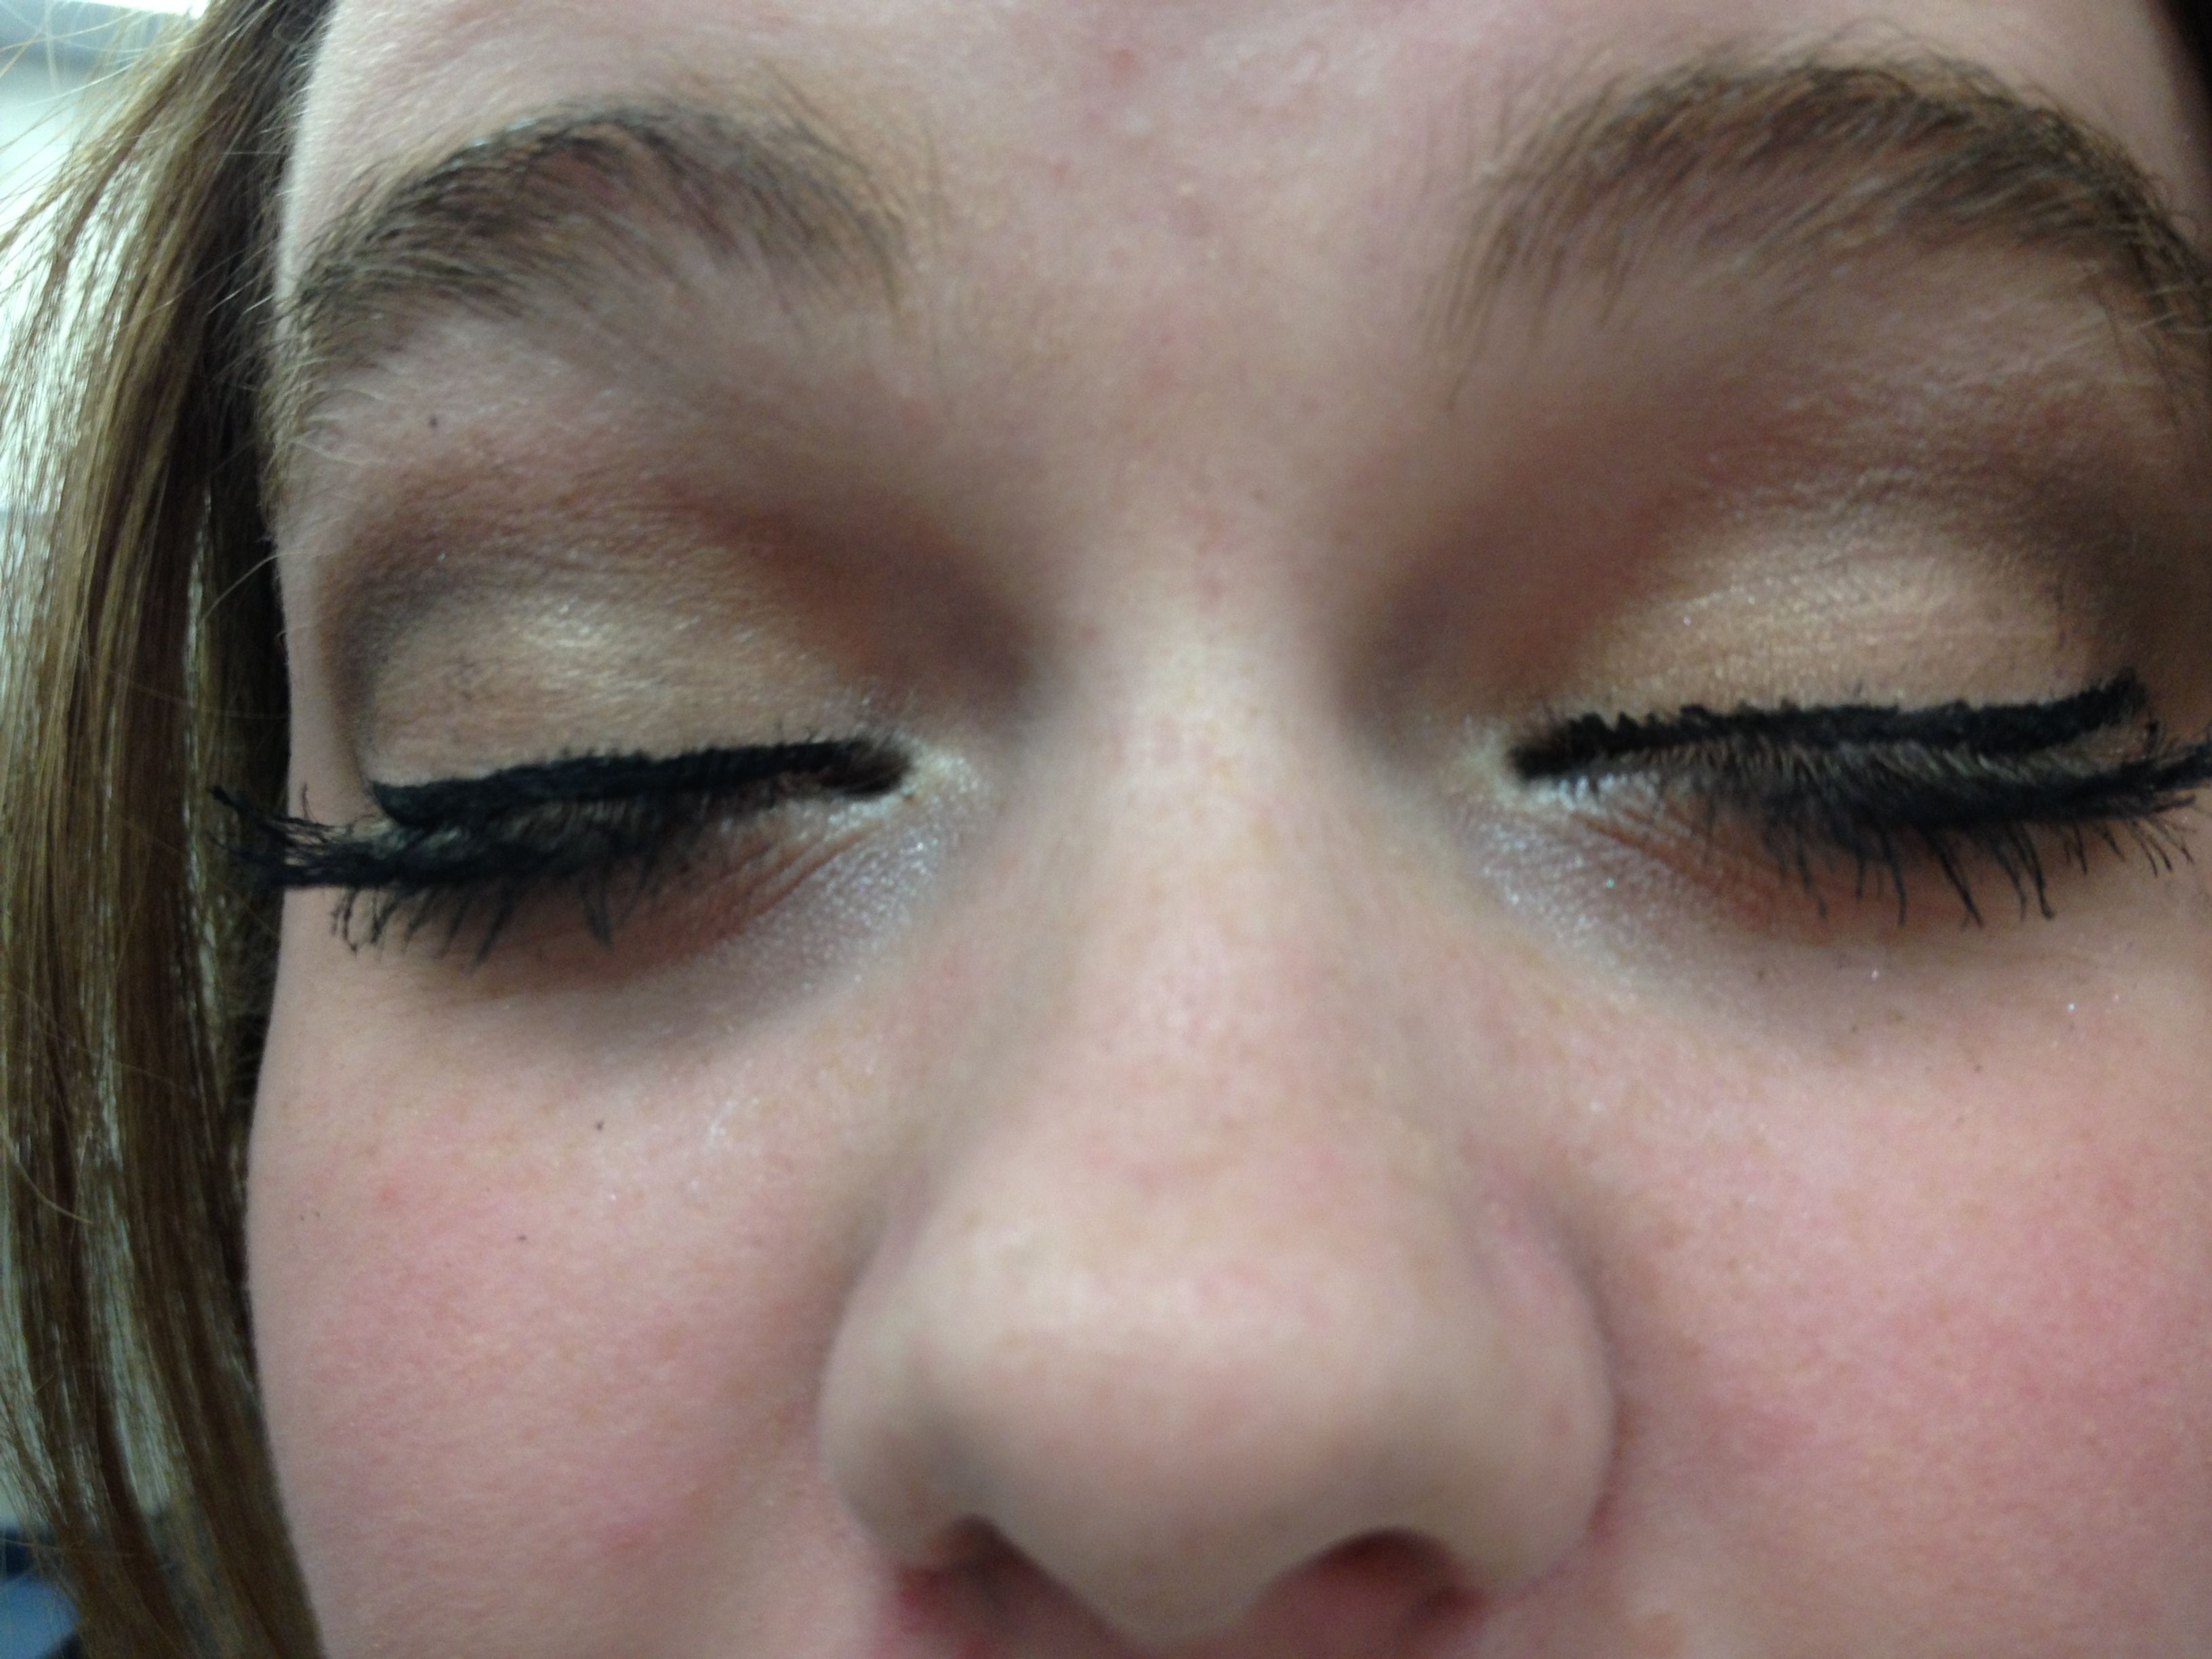 For A Demonstration Speech In Class I Demonstrated How To Do A Beautiful Every Day Eye Makeup Look My Amazing Friend Ba Day Eye Makeup Makeup Looks Eye Makeup